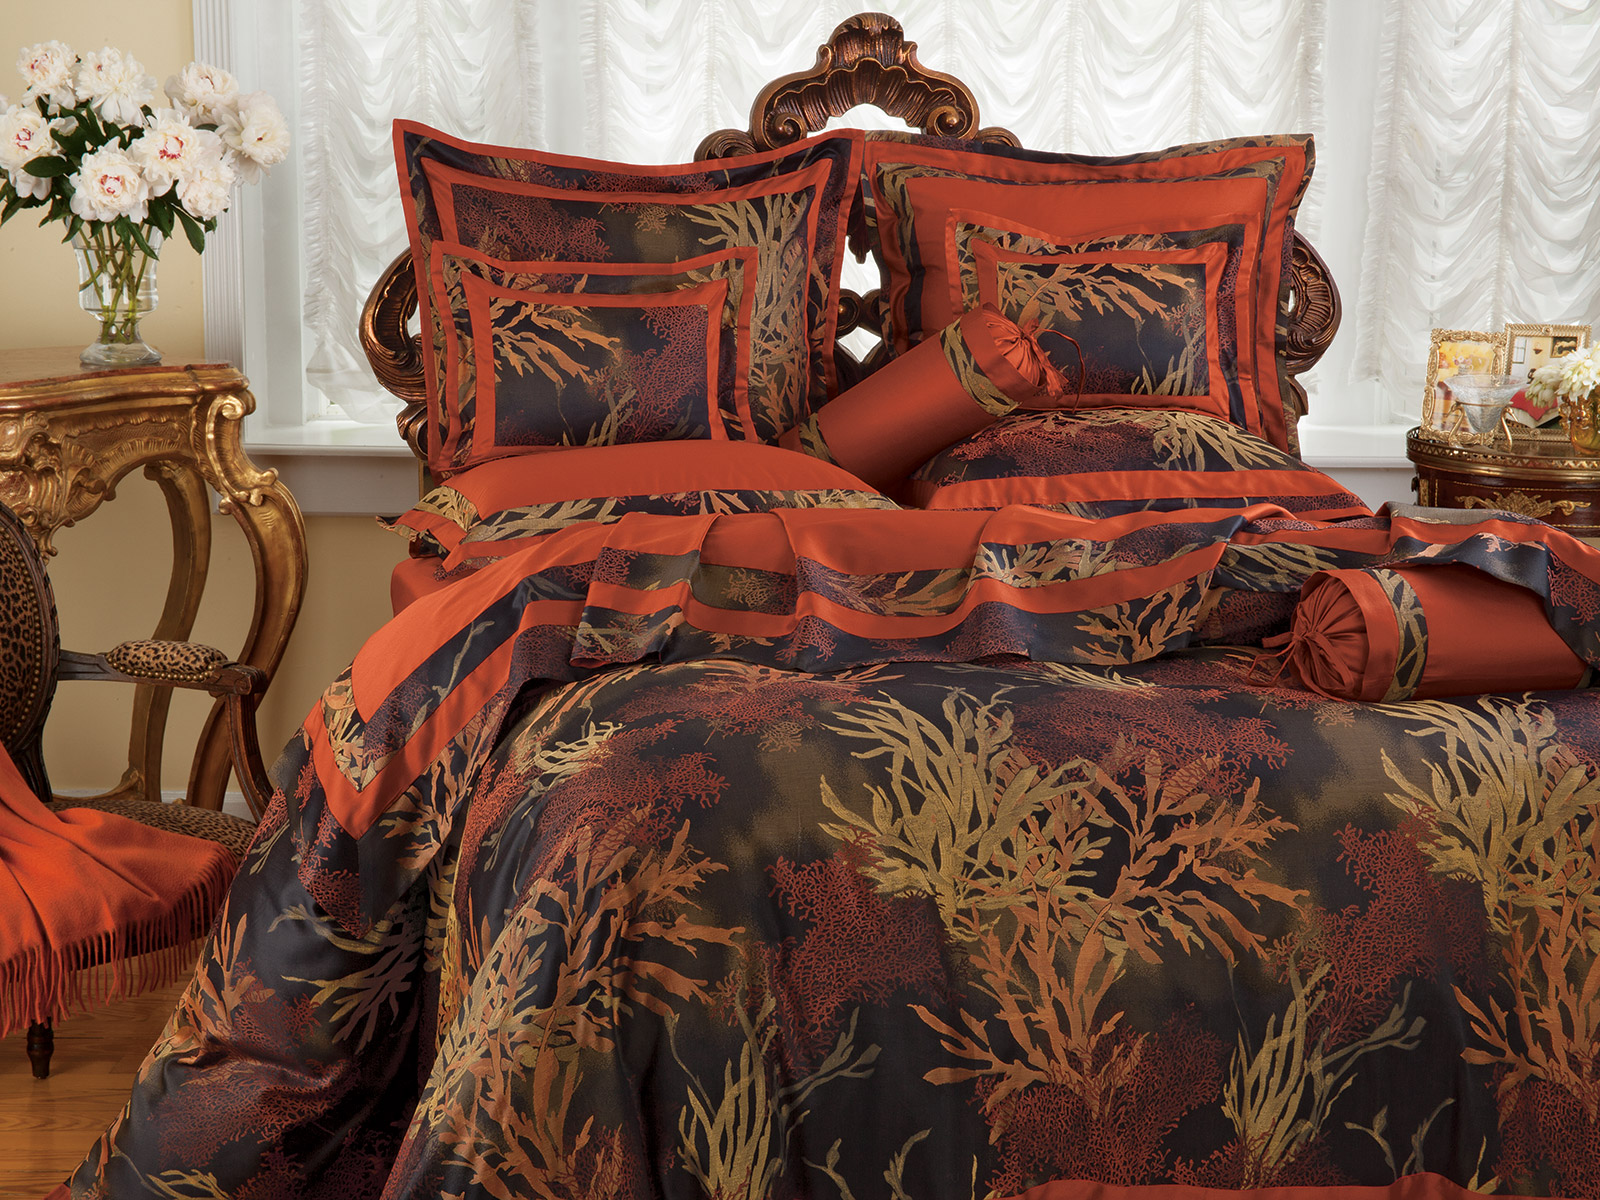 Coral Reef Luxury Bedding Italian Bed Linens